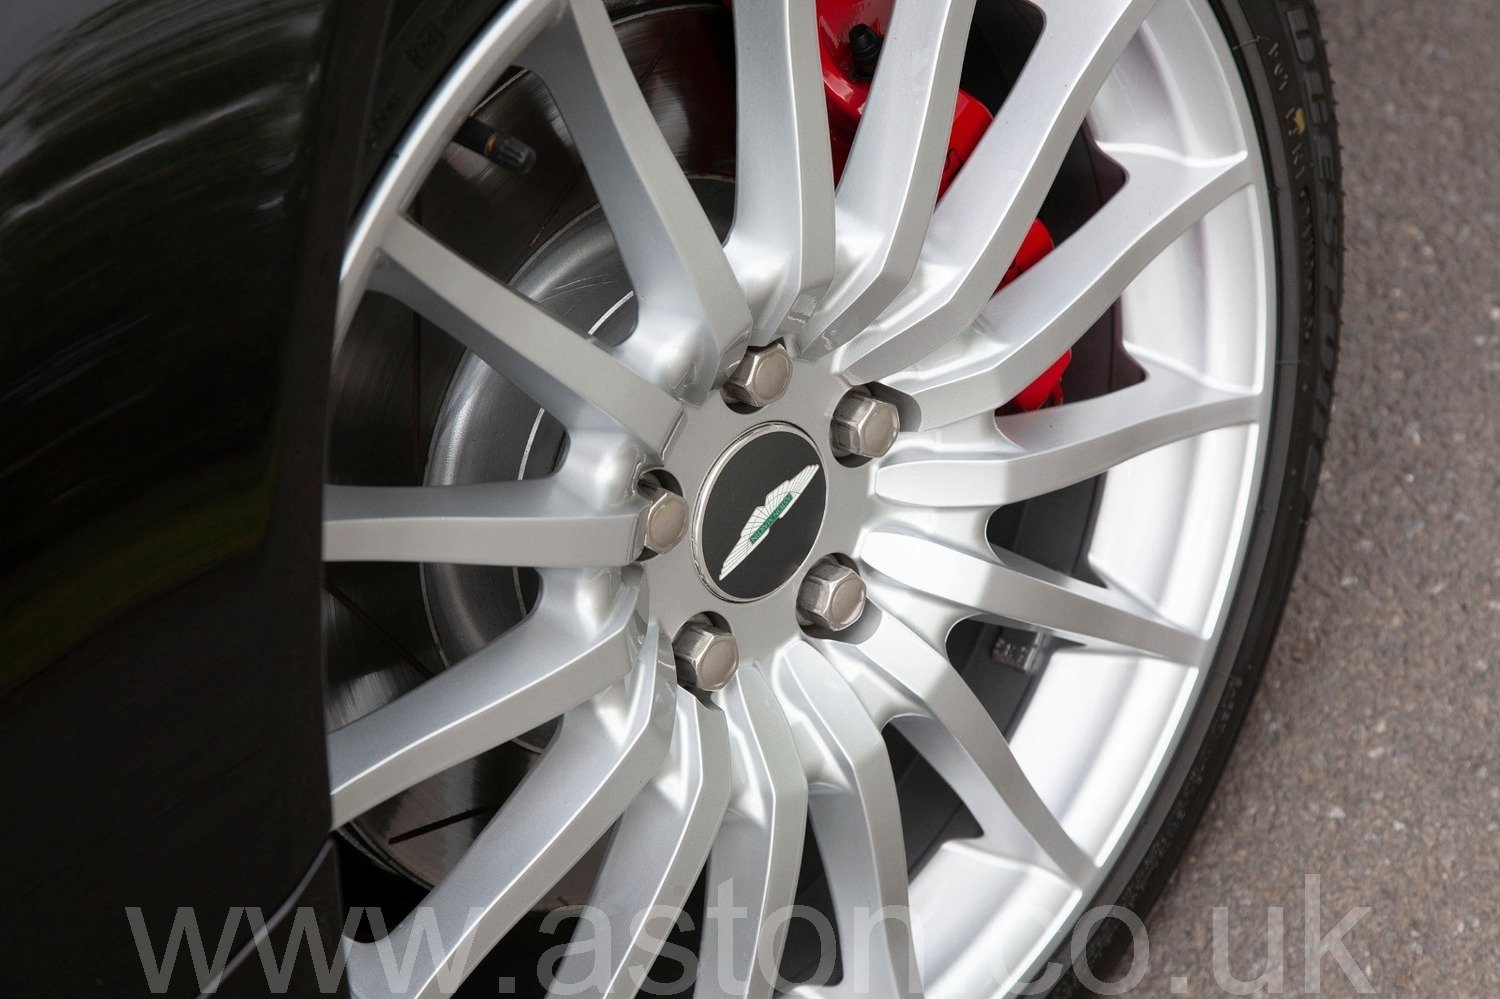 2005 Semi-Automatic DB9 Coupe For Sale (picture 4 of 6)